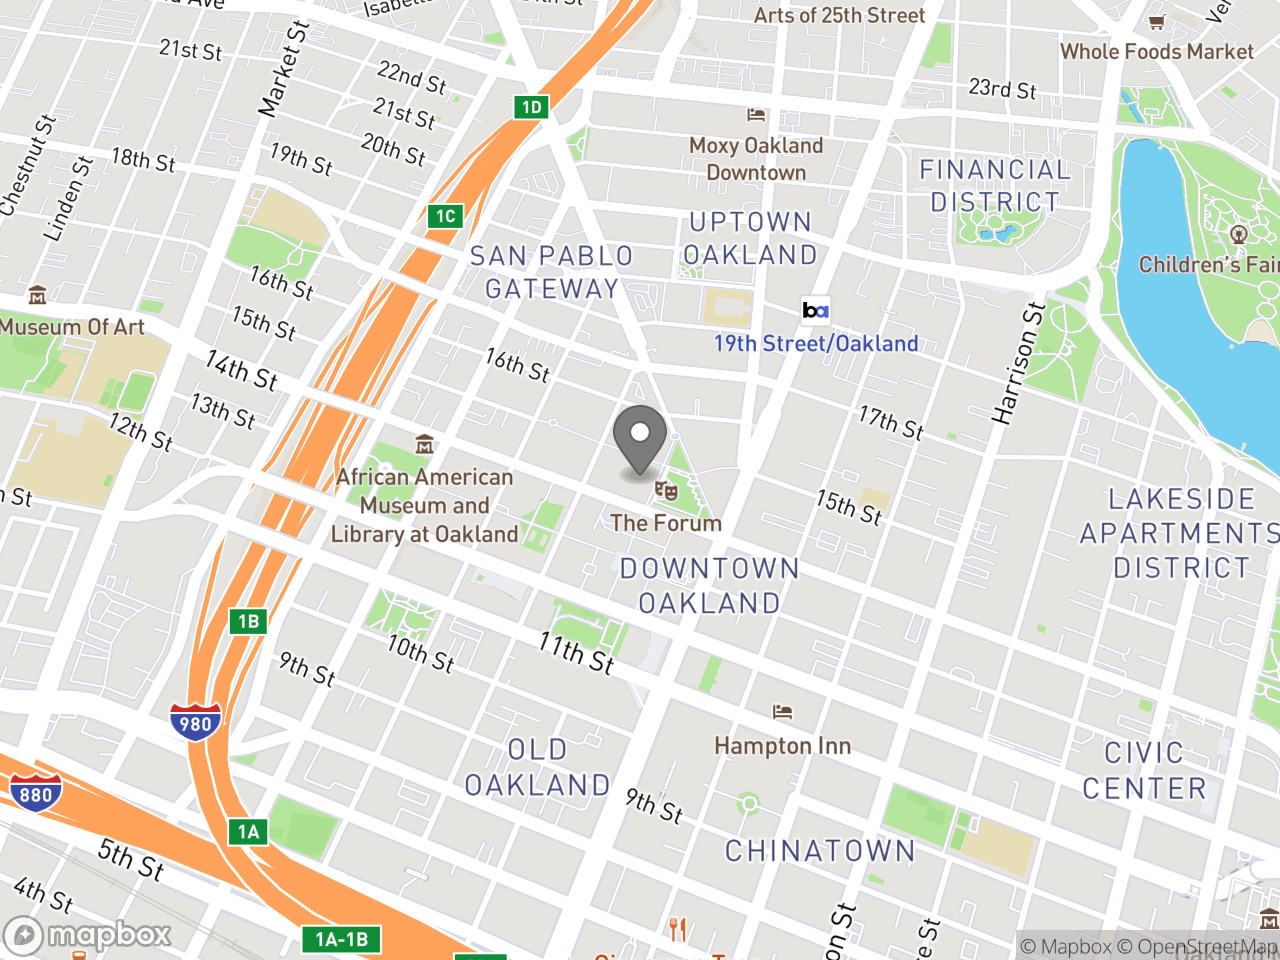 Map location for Bicyclist and Pedestrian Advisory Commission (BPAC) Meeting, February 16, 2017, located at 1 Frank H Ogawa Plaza in Oakland, CA 94612